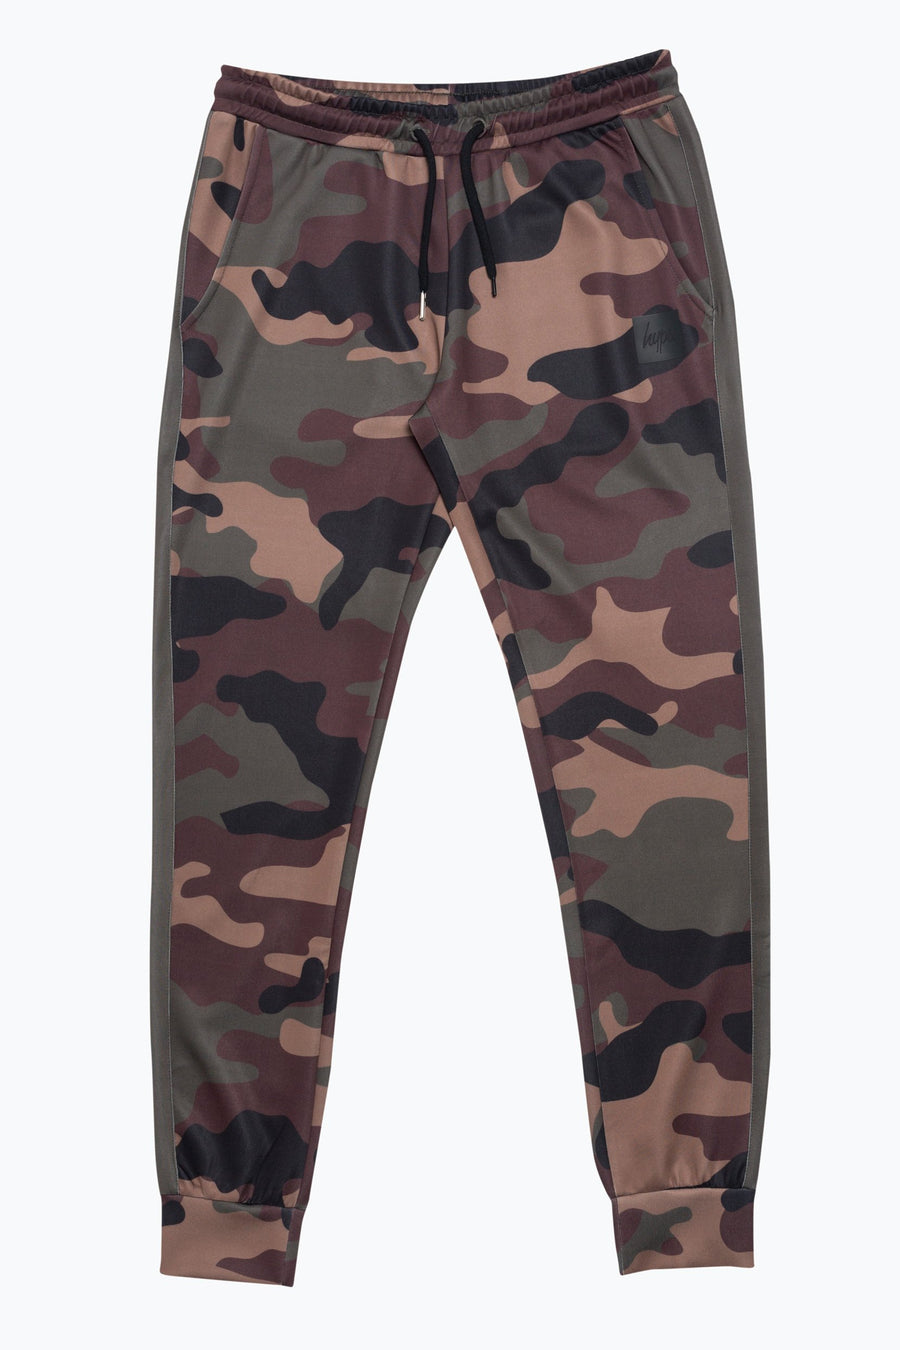 HYPE CAMO POLY STRIPE MEN'S JOGGERS